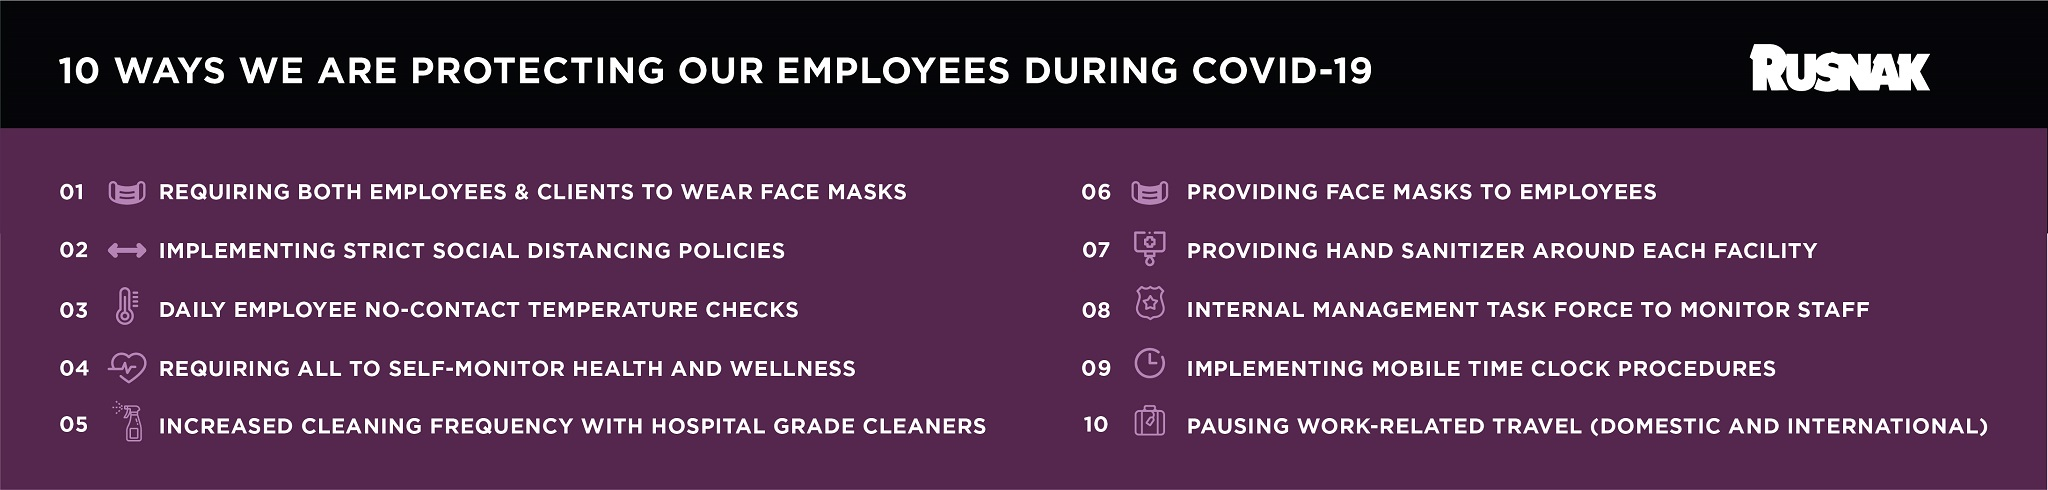 HR Covid 19 Infographic